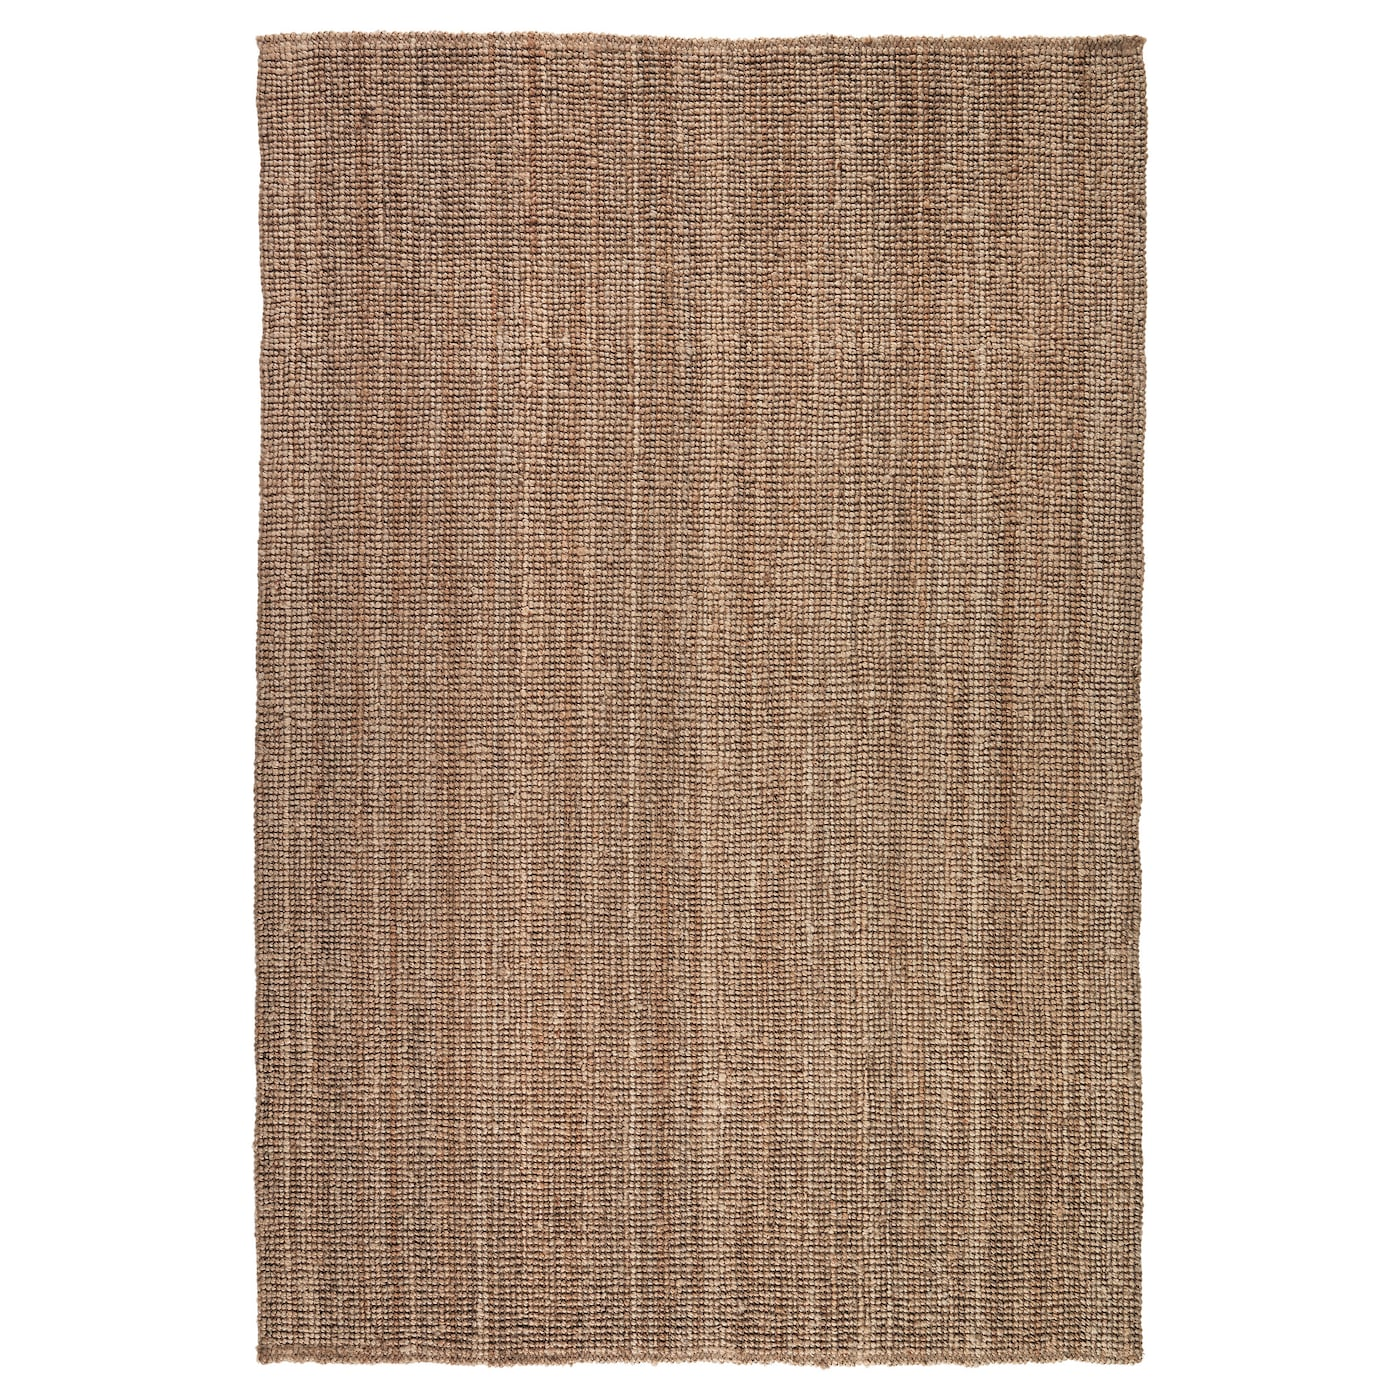 Lohals Rug Flatwoven Natural 160x230